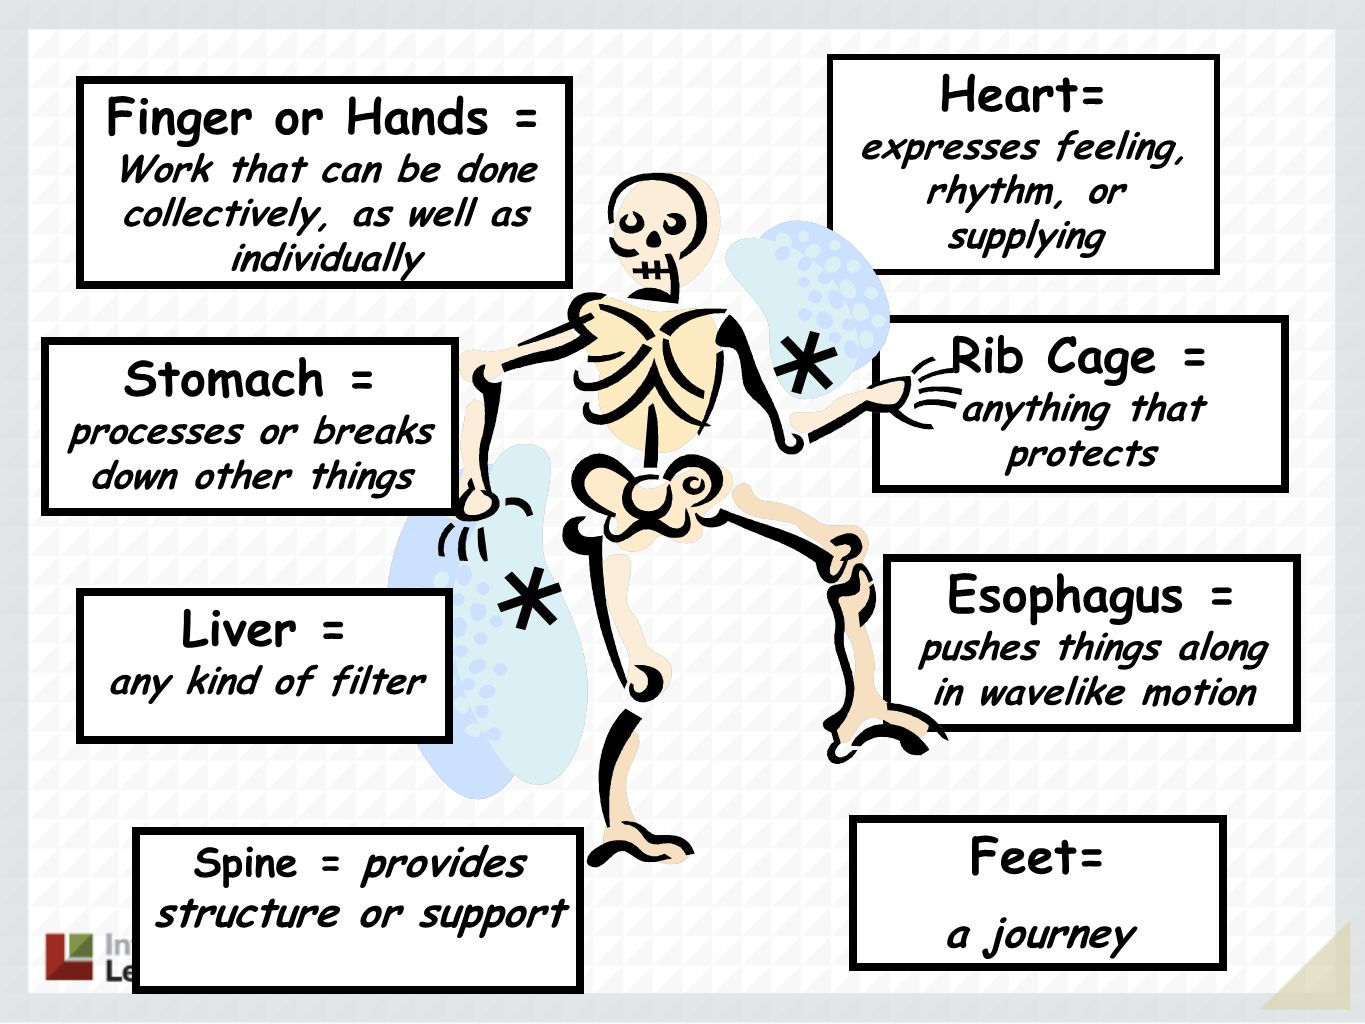 Esophagus = pushes things along in wavelike motion Rib Cage = anything that protects Feet= a journey Heart= expresses feeling, rhythm, or supplying Fi